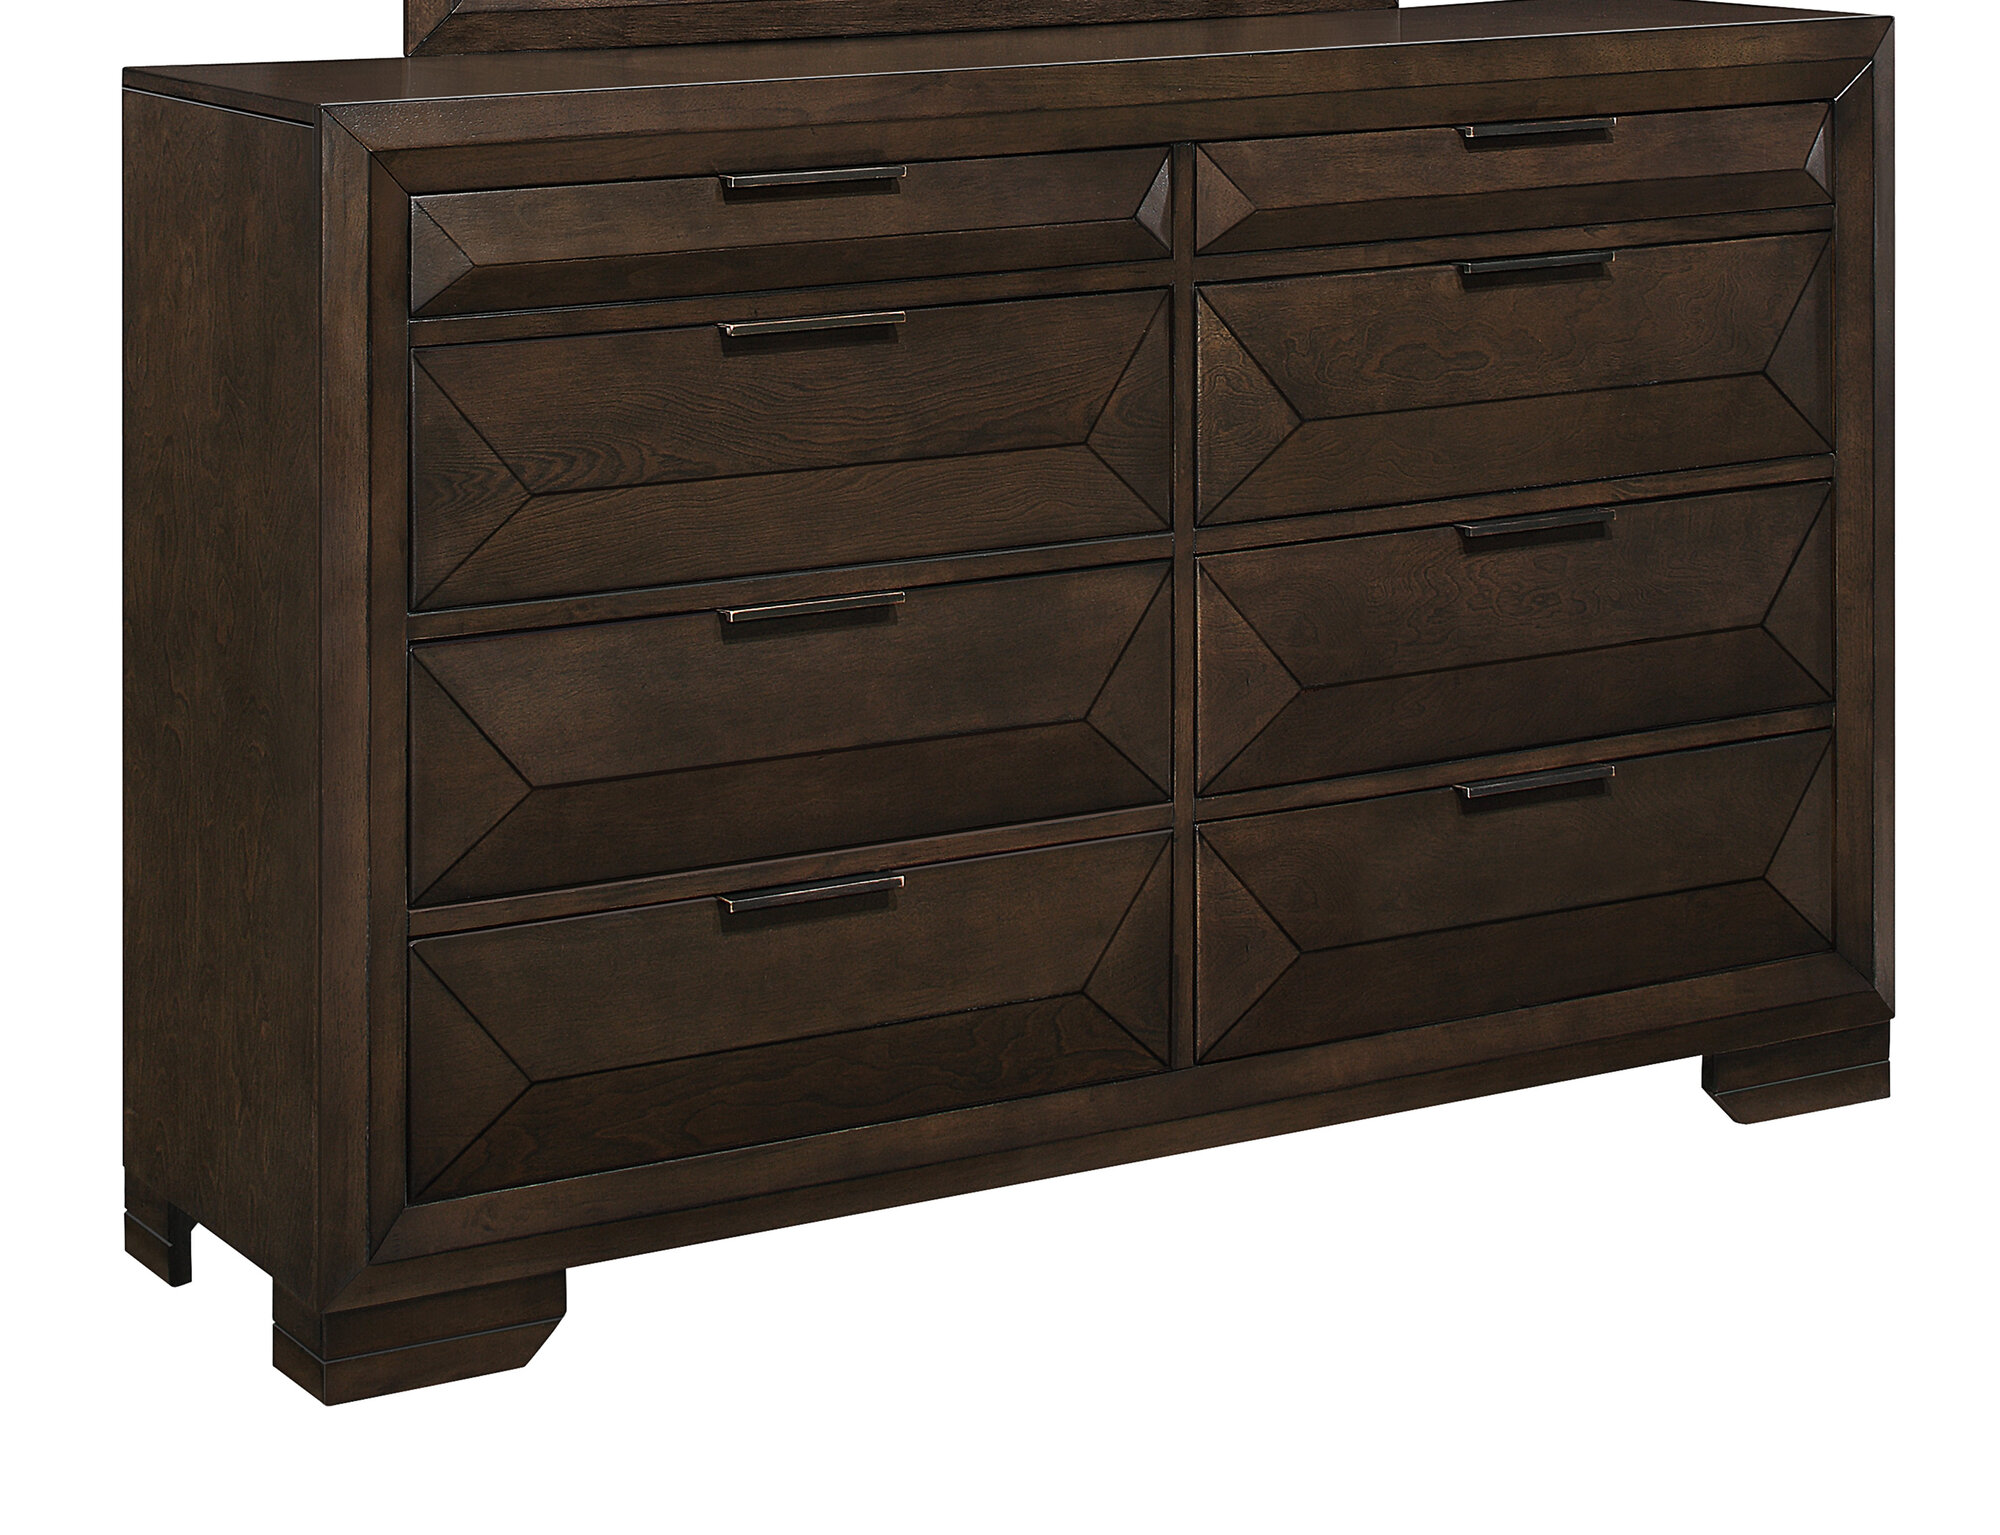 Details About Wrought Studio Boos 8 Drawer Dresser